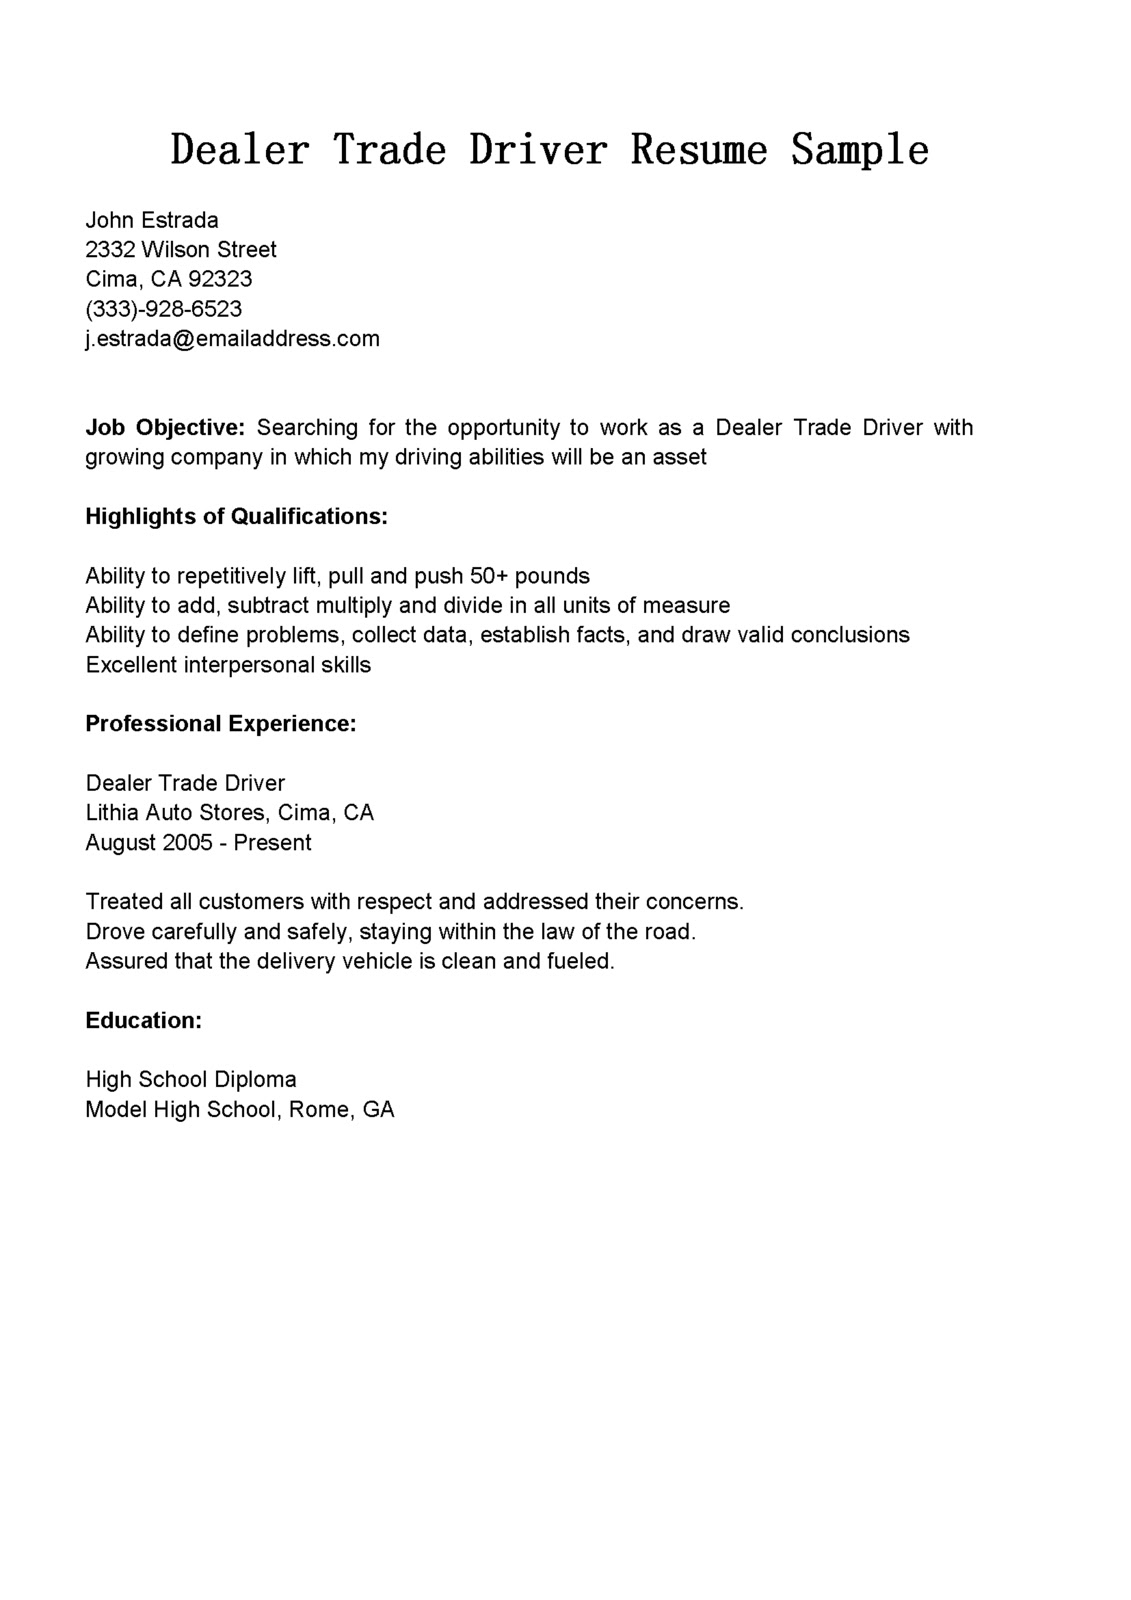 application letter for employment as a driver